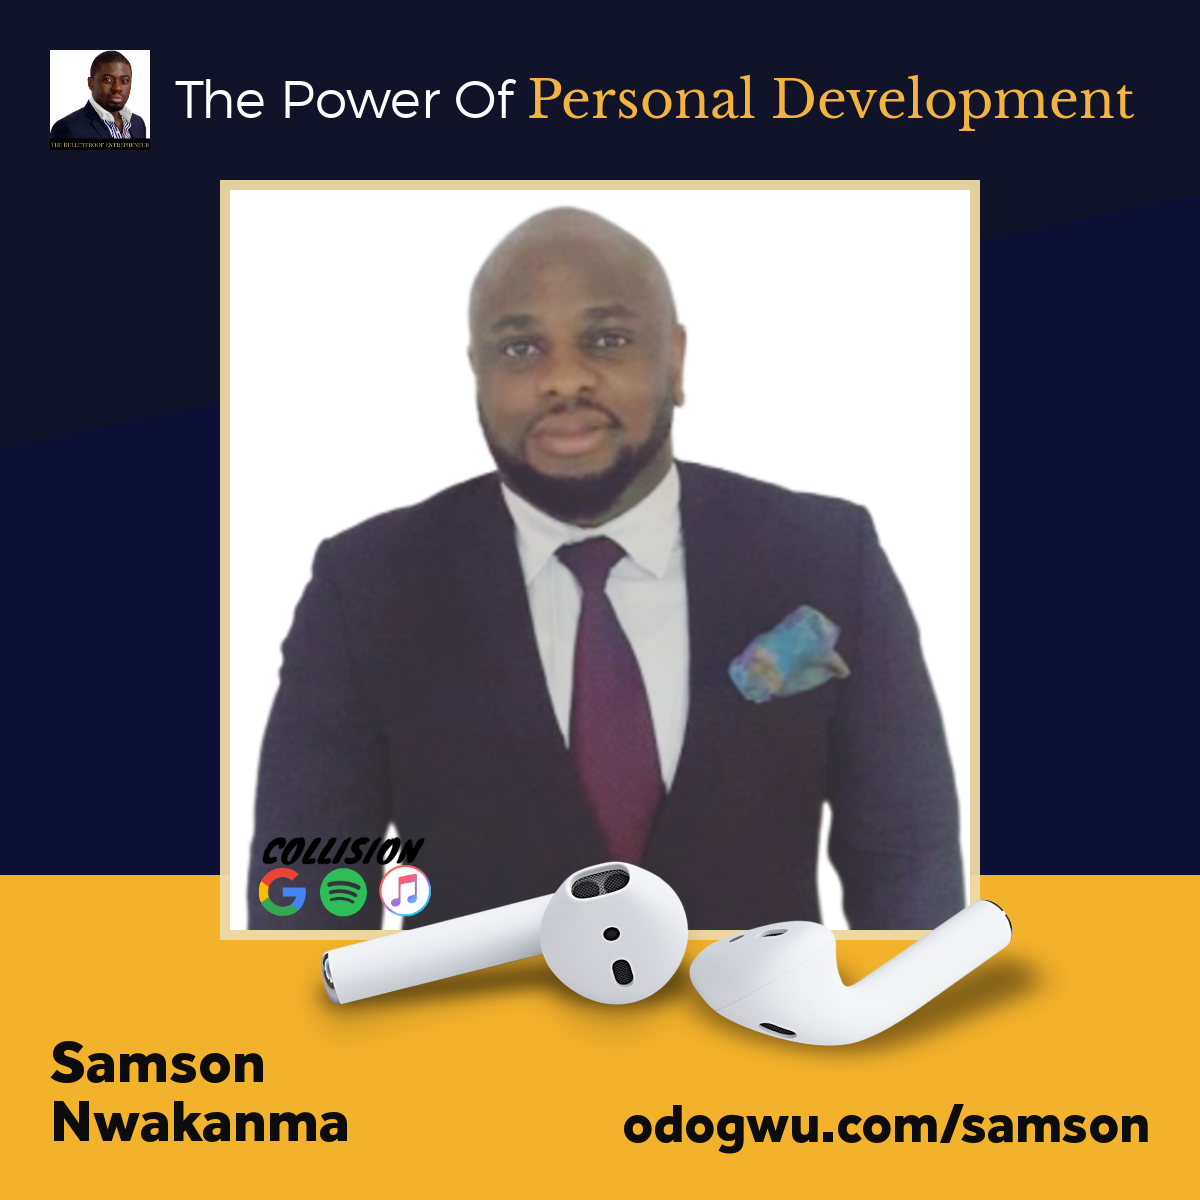 Samson Nwakanma discusses The Power Of Personal Development